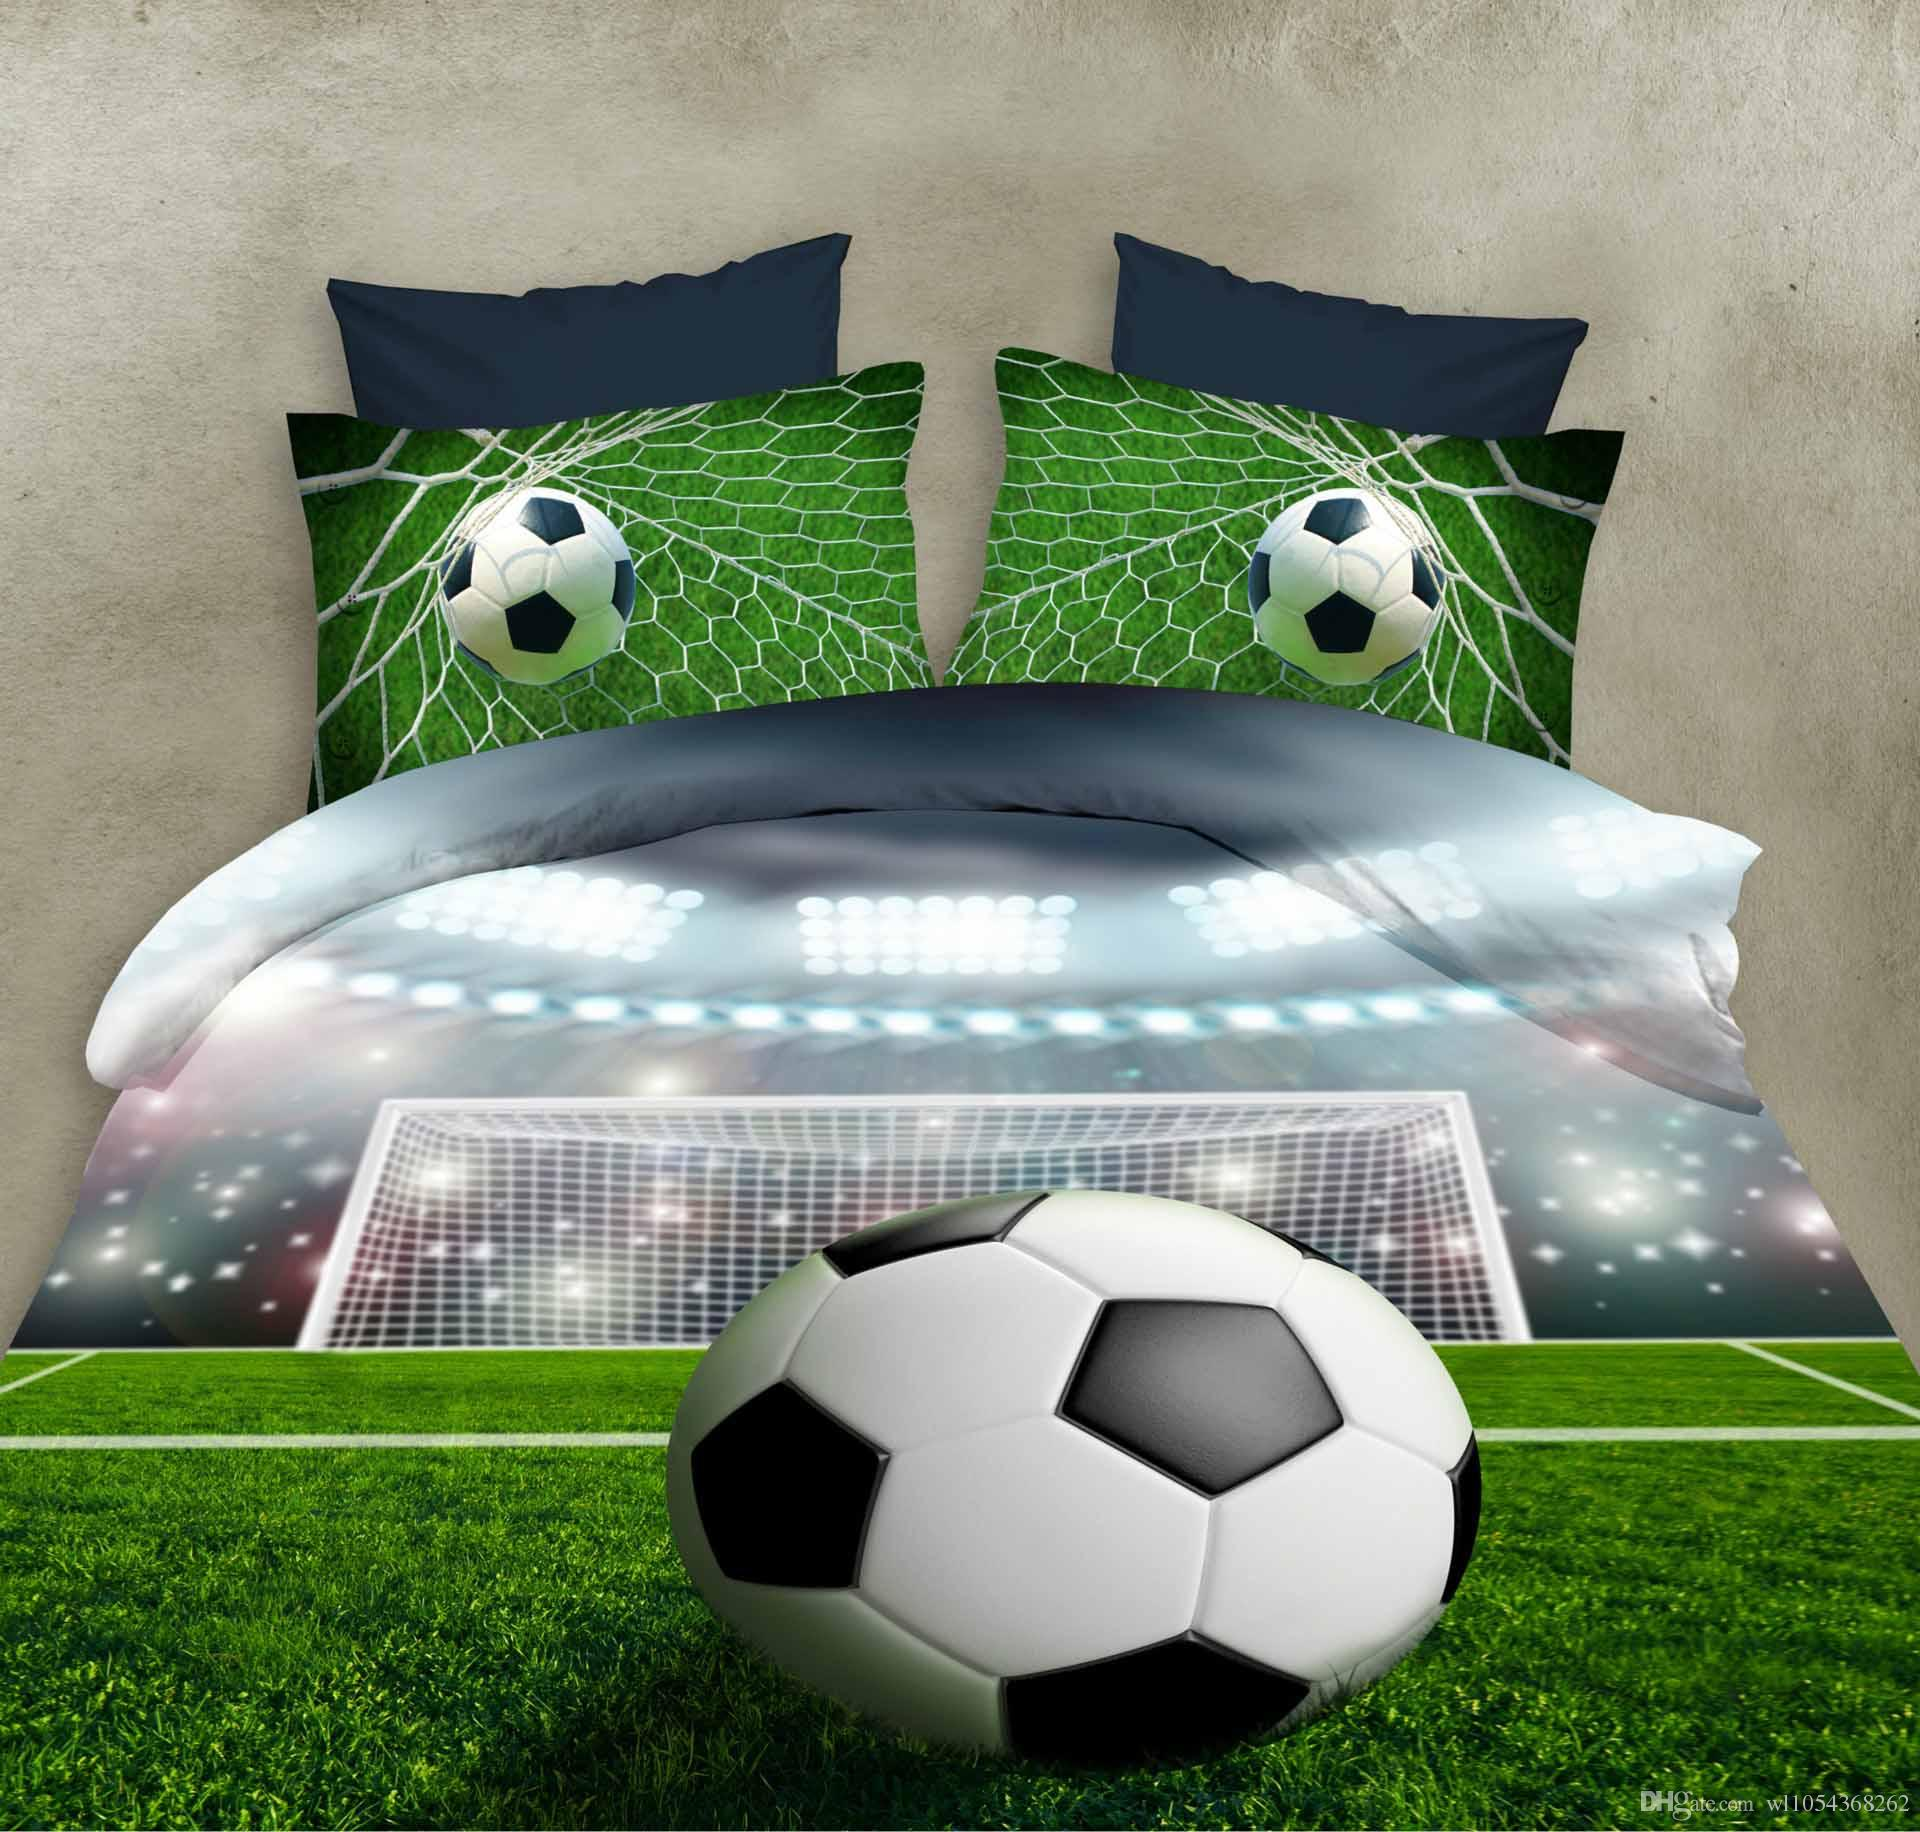 Factory New 3D Soccer Bedding Set Soccer Design Printed Duvet Cover Set Include Bedspread Bed Linens Pillowcase Free Shipping Queen Size